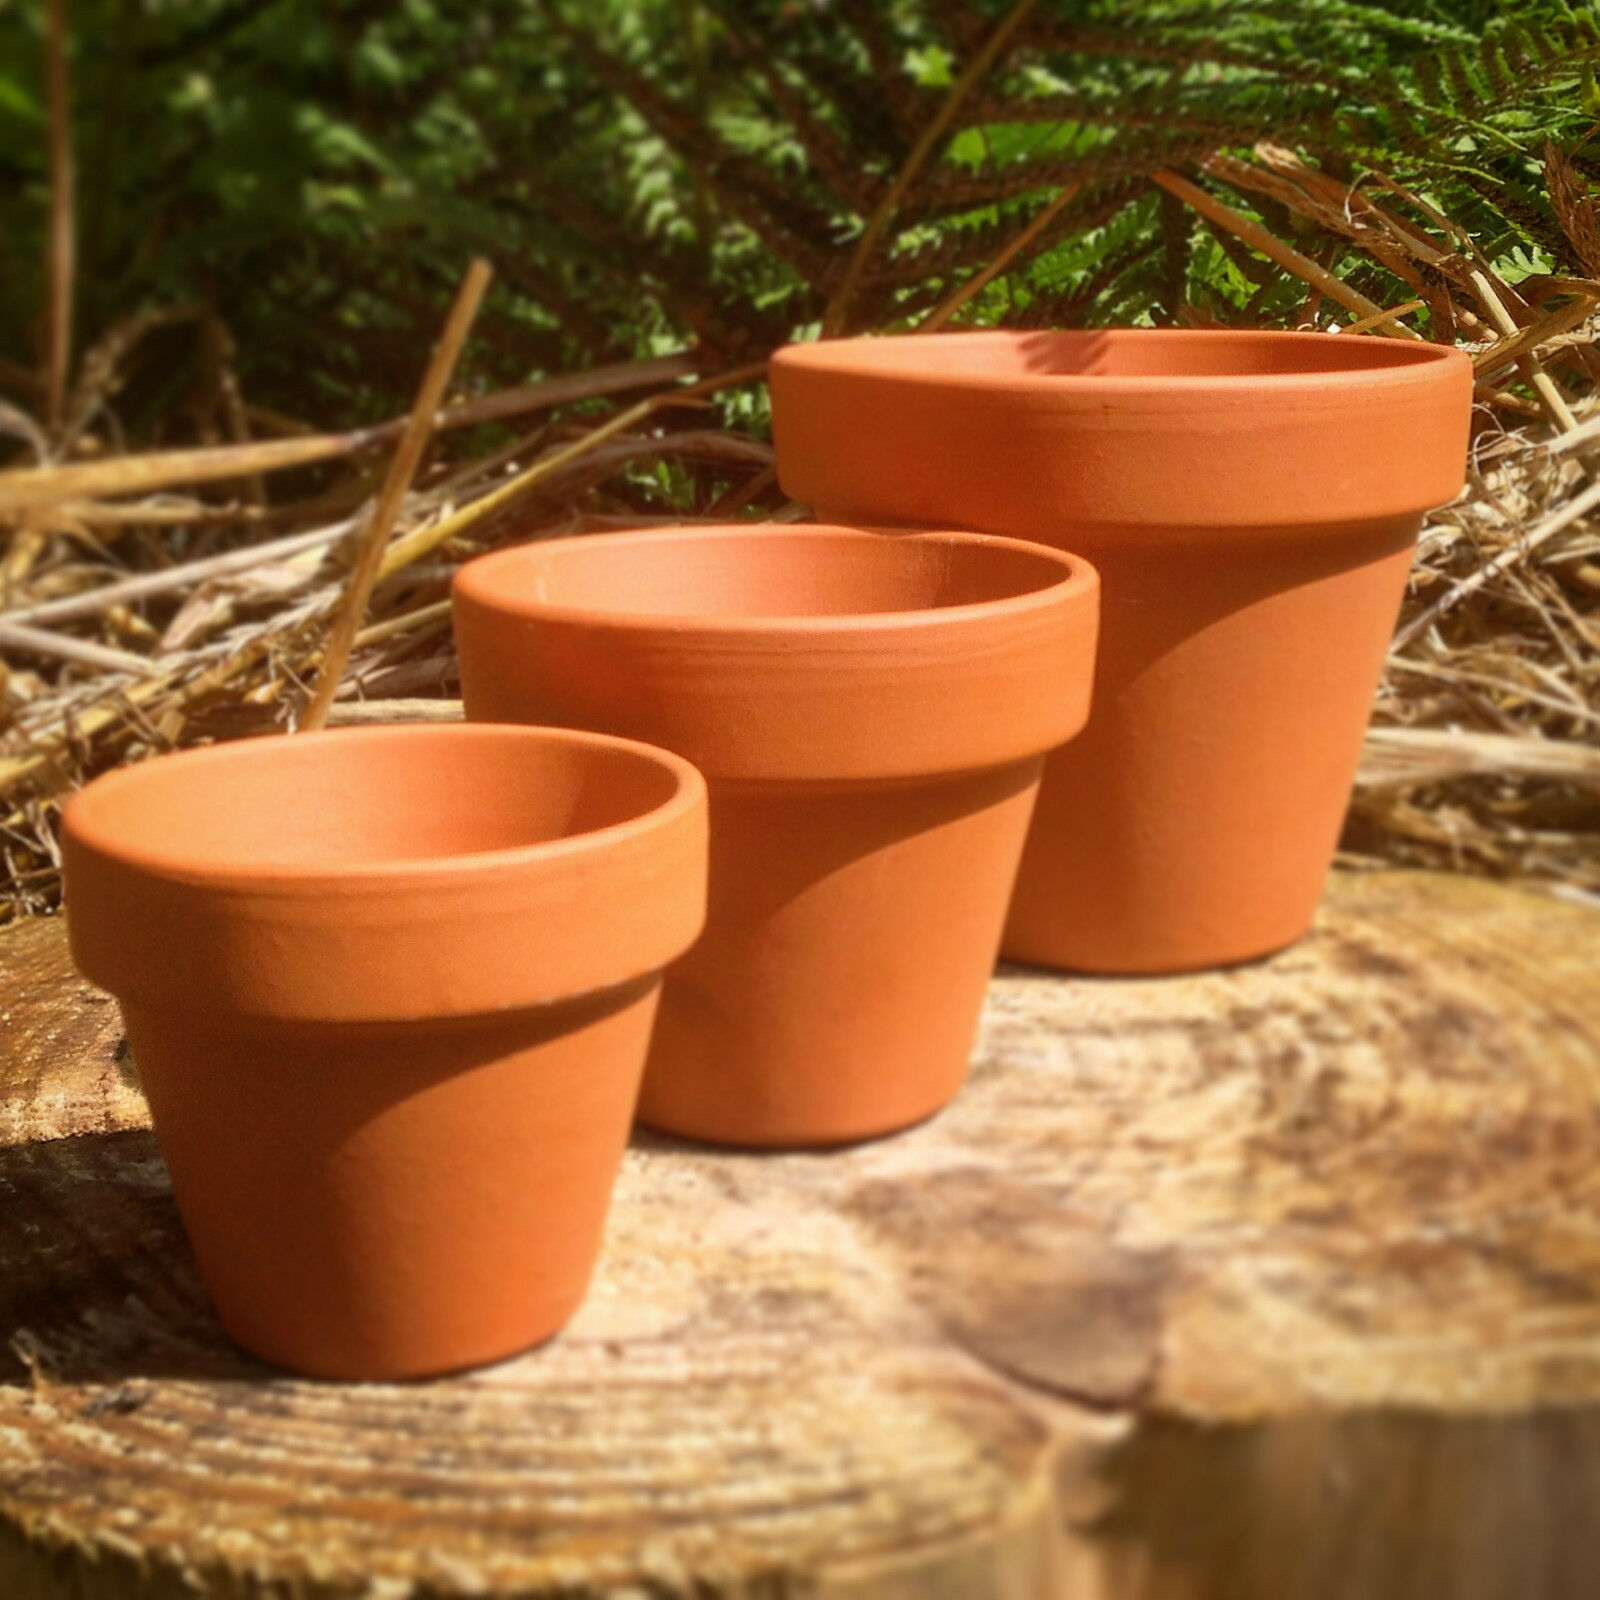 10 mini terracotta plant pot saucers 11cm diameter ebay. Black Bedroom Furniture Sets. Home Design Ideas